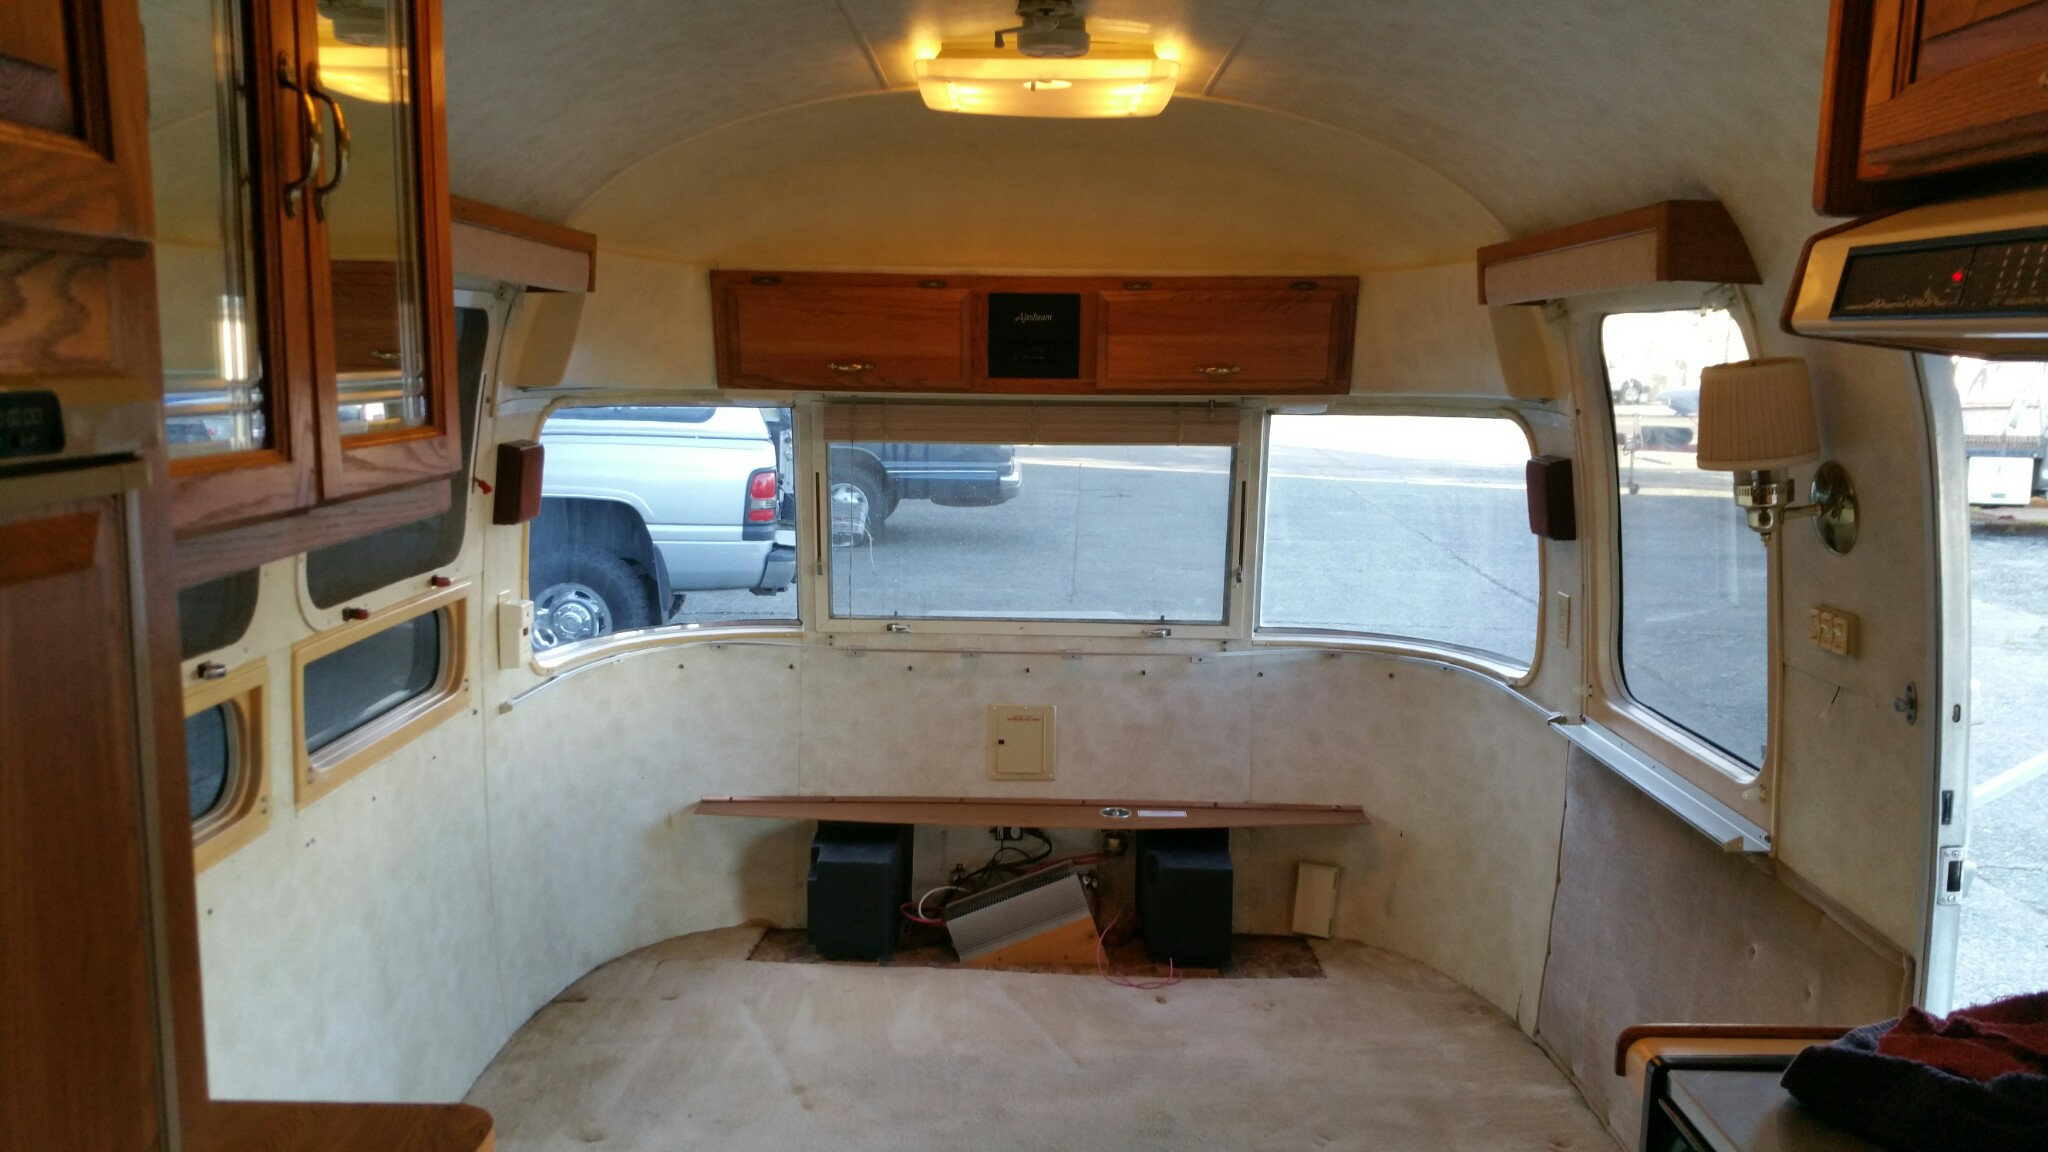 Interior When I First Got The Trailer